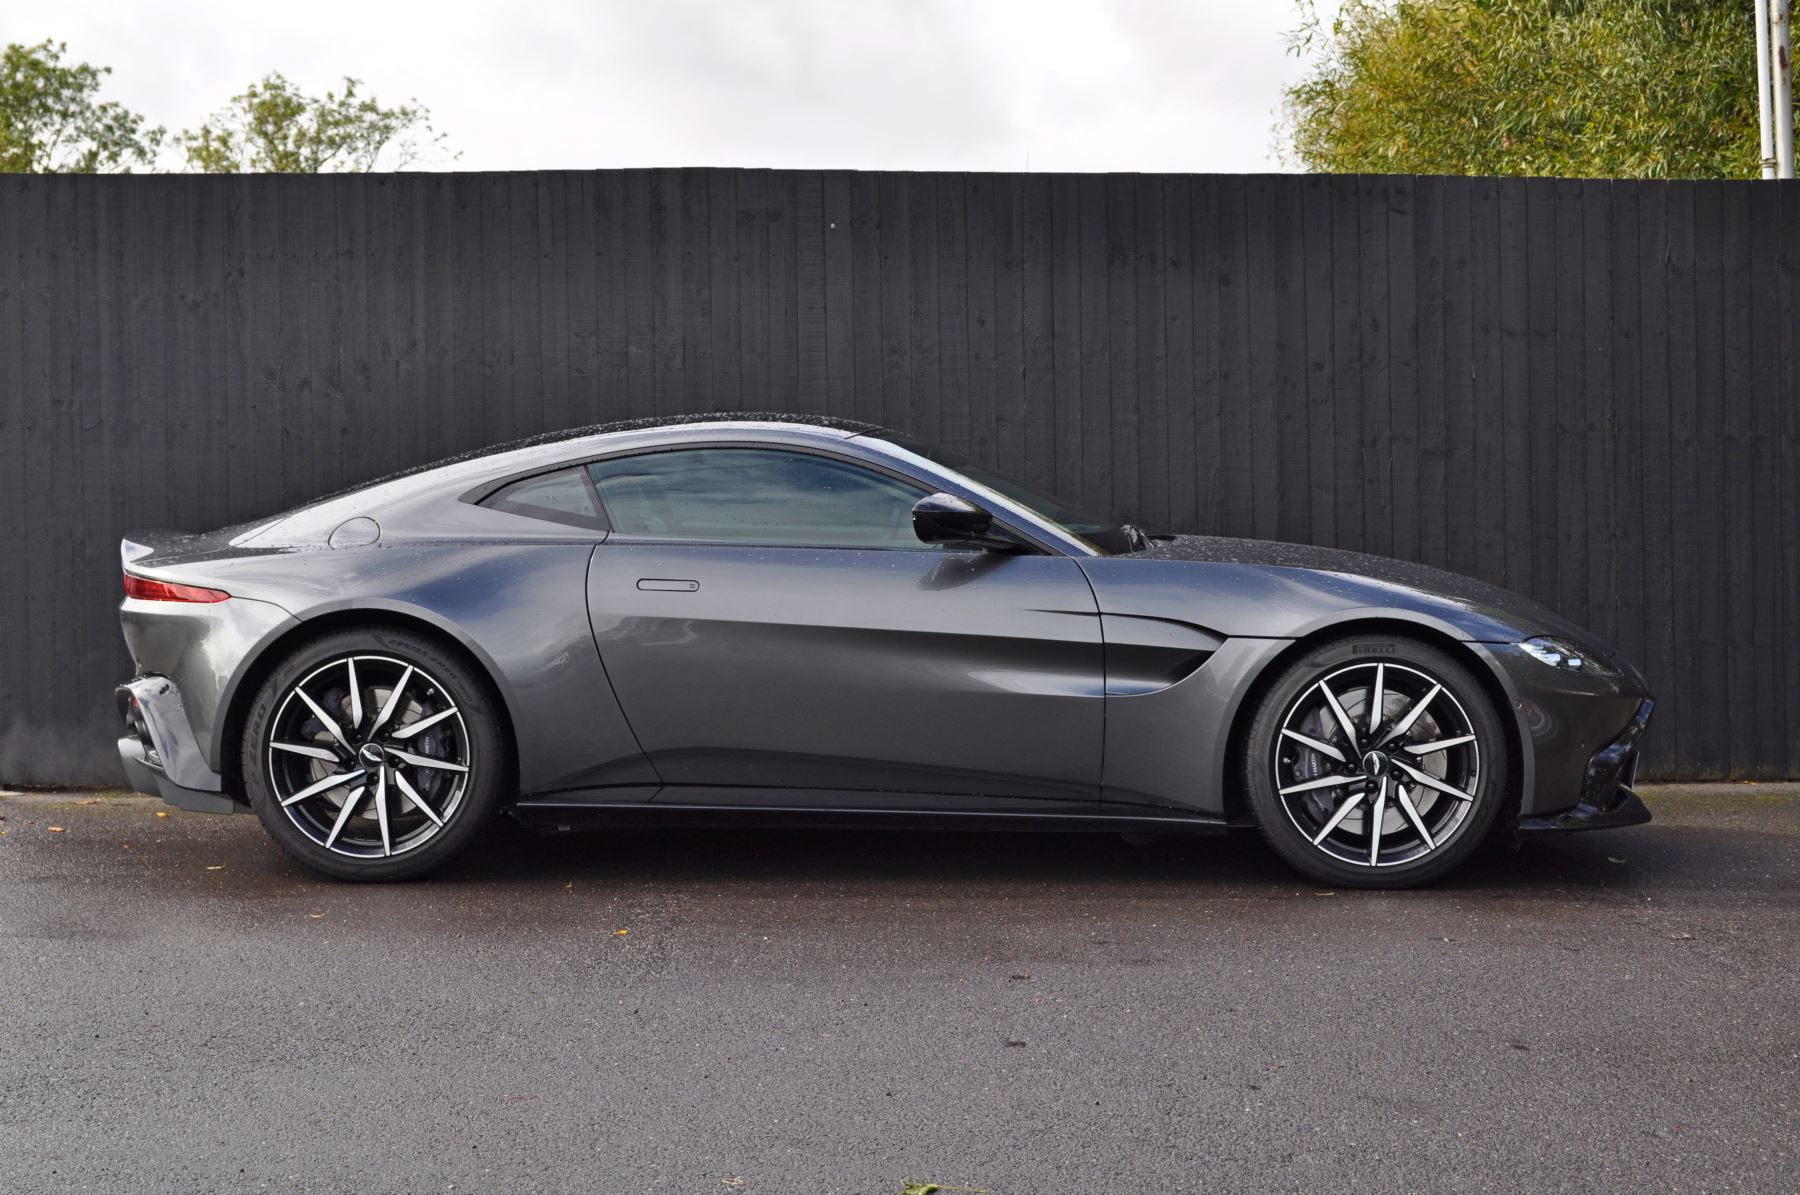 Aston Martin New Vantage 2dr ZF 8 Speed image 4